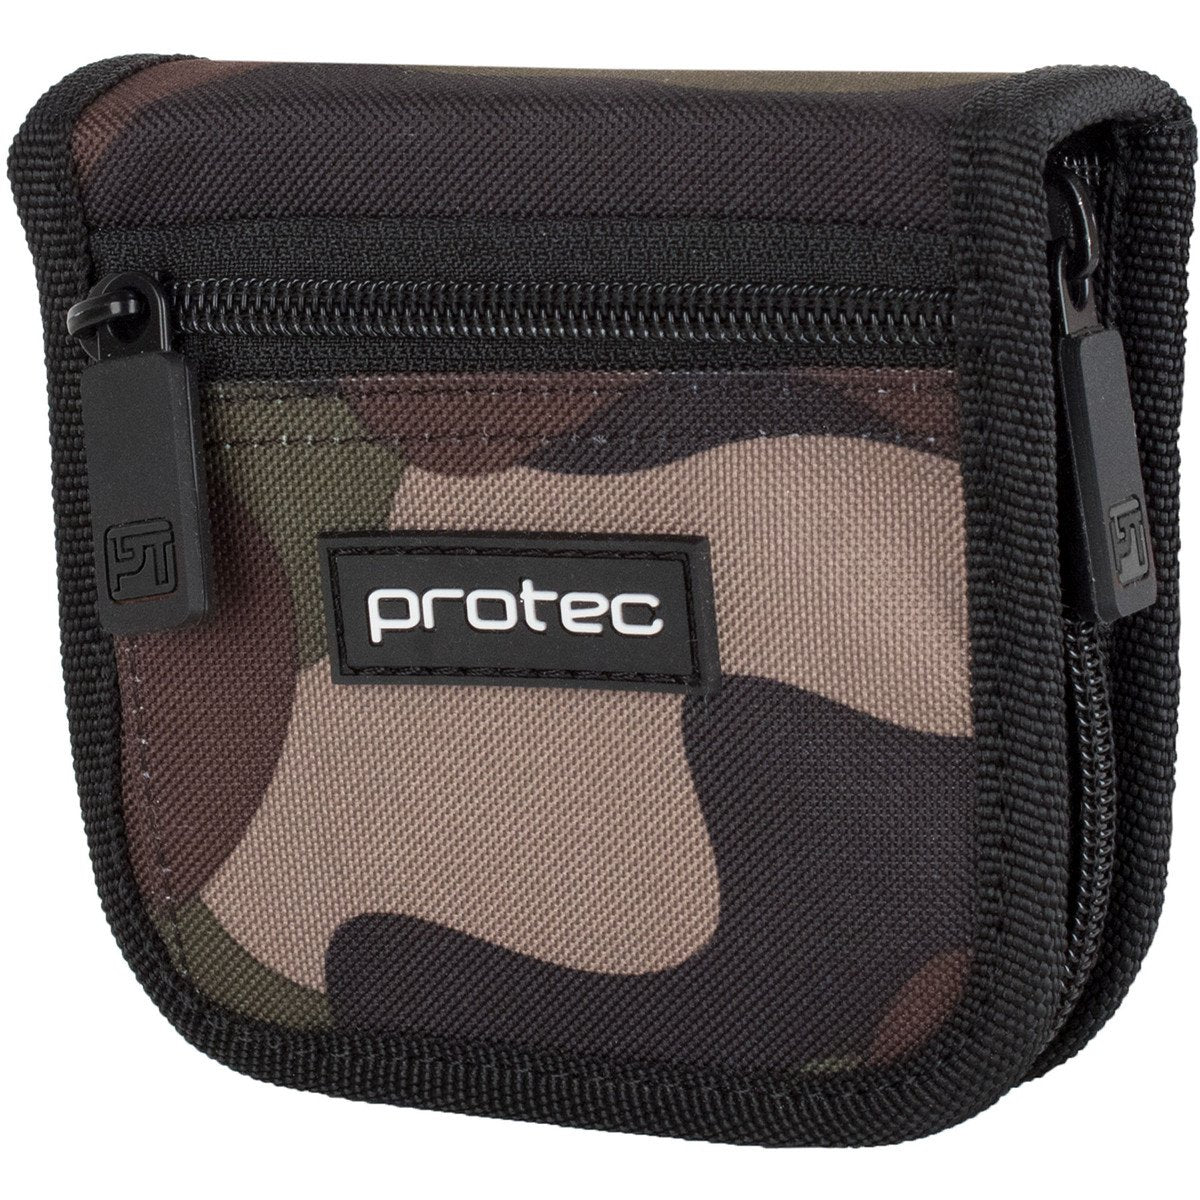 Protec - 2-Piece Tuba Nylon Mouthpiece Pouch with Zipper Closure (Camo)-Accessories-Protec-Music Elements